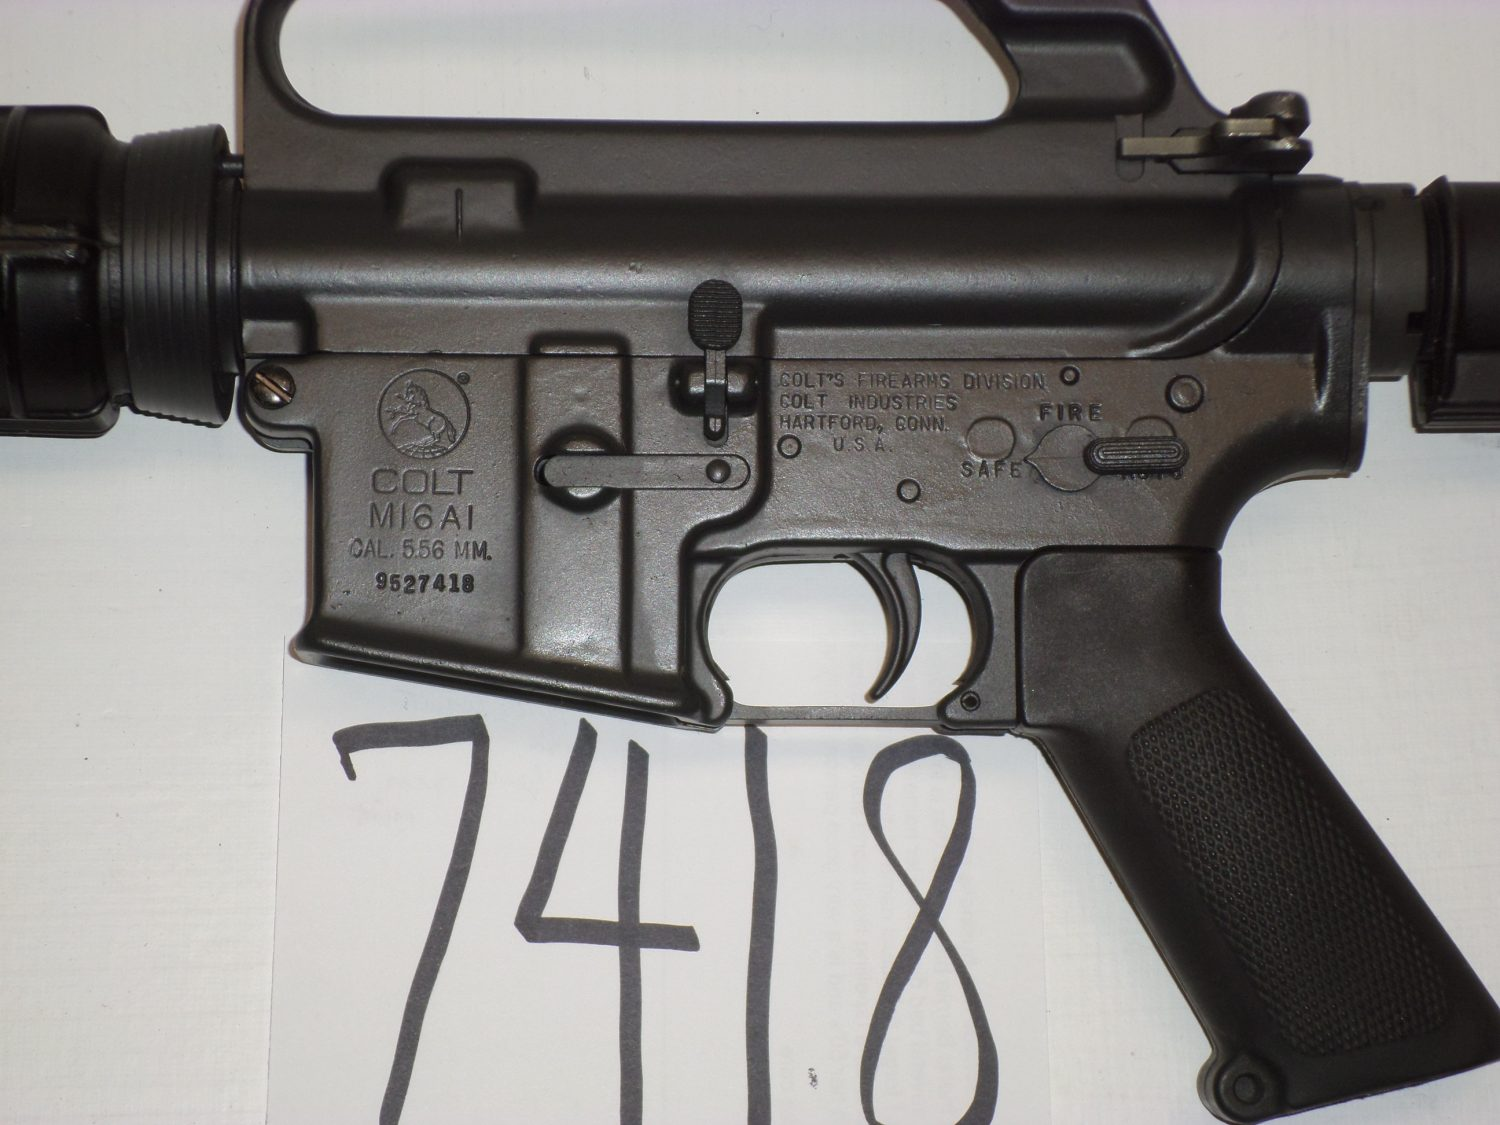 What is this? SP1 with 9 million serial number? - AR15 COM